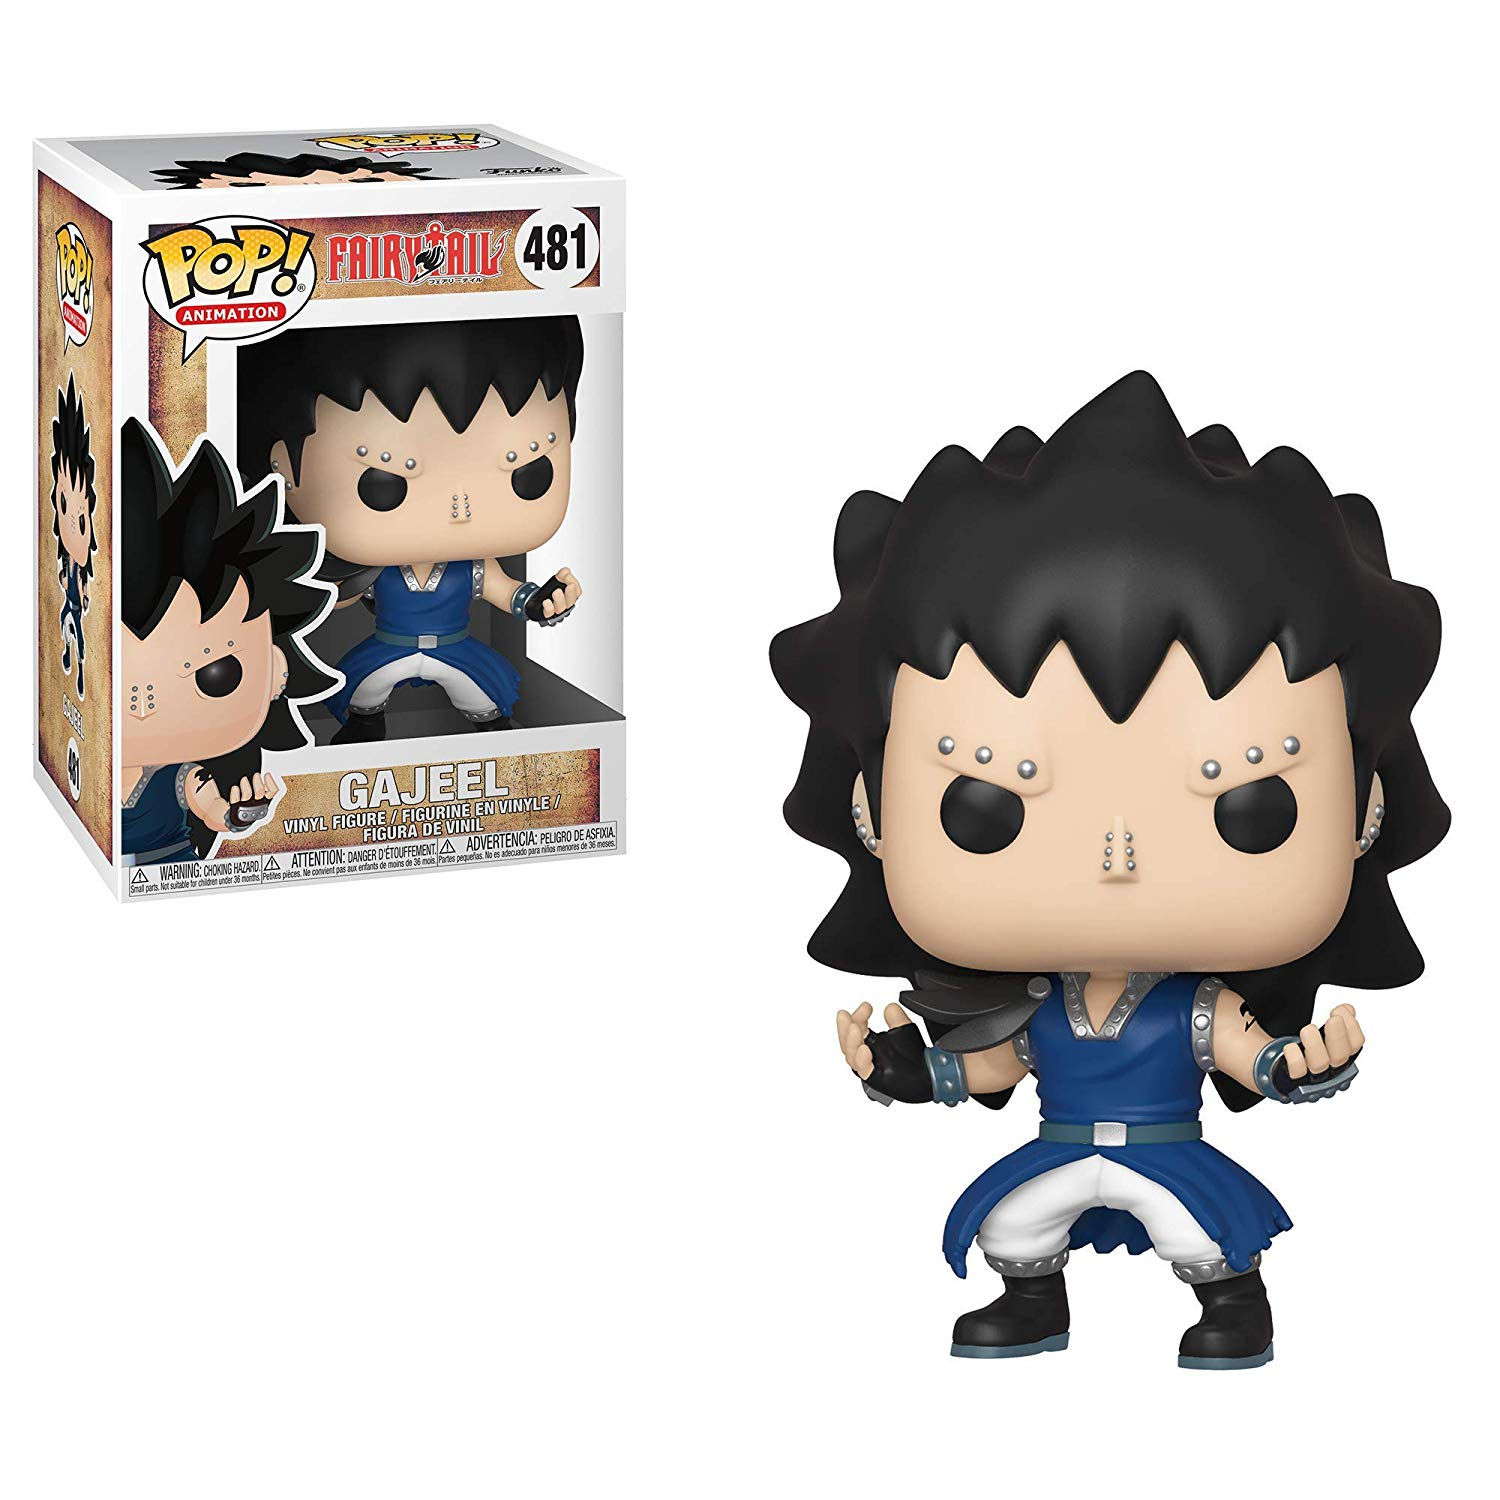 Фигурка Funko POP! Vinyl: Fairy Tail S3: Gajeel 30604